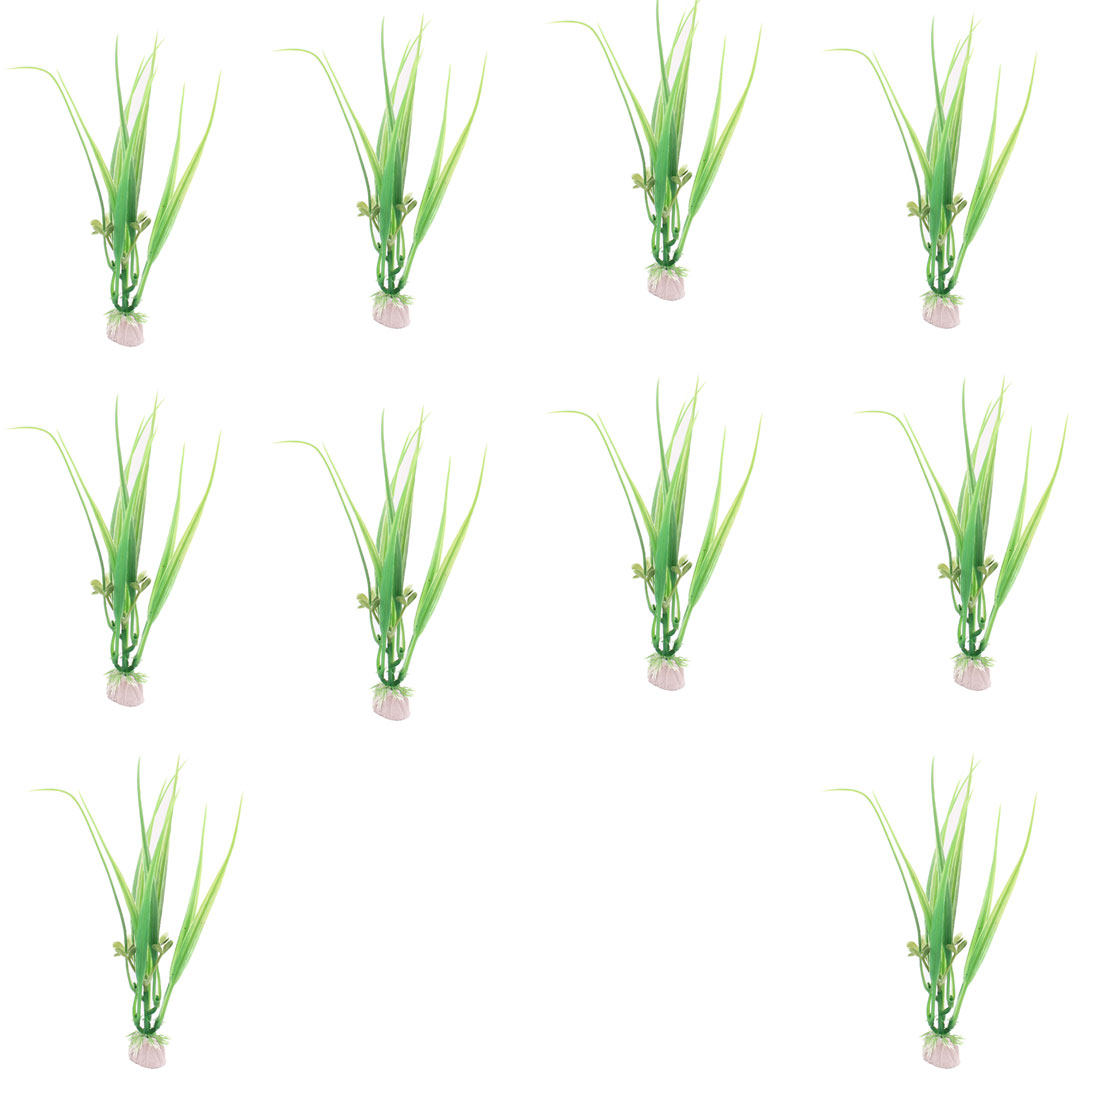 Plastic Aquascaping Underwater Plant Grass Aquarium Decor Green 10 Pcs